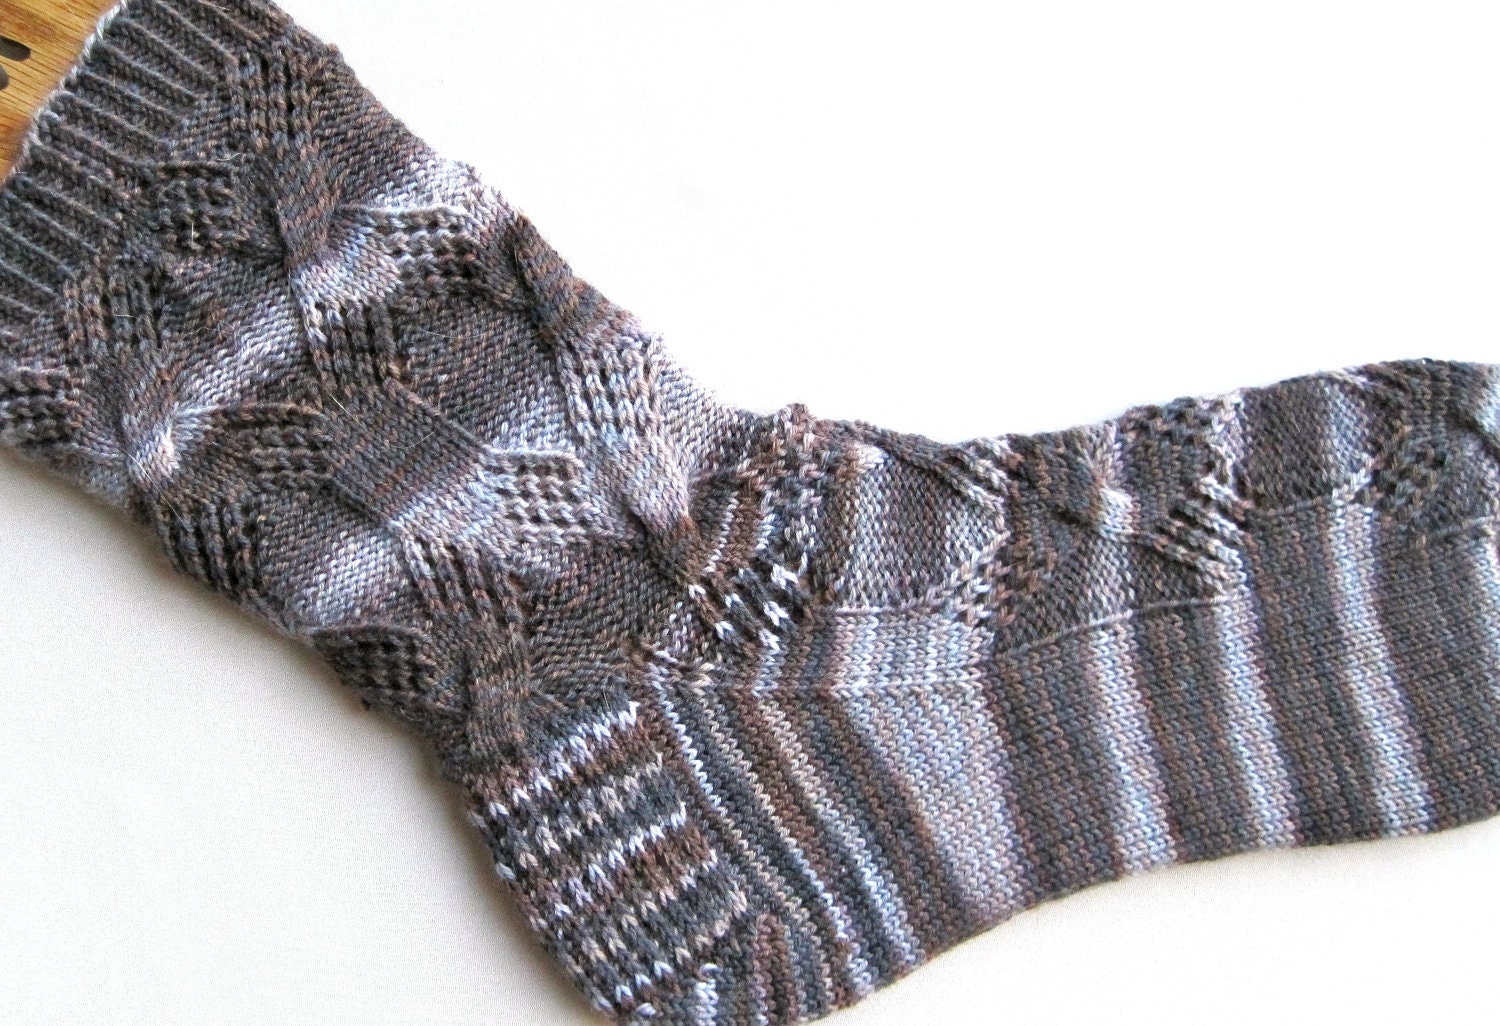 Cable Knit Sock Pattern : Knit Sock Pattern: Diamond Lace Cable by WearableArtEmporium